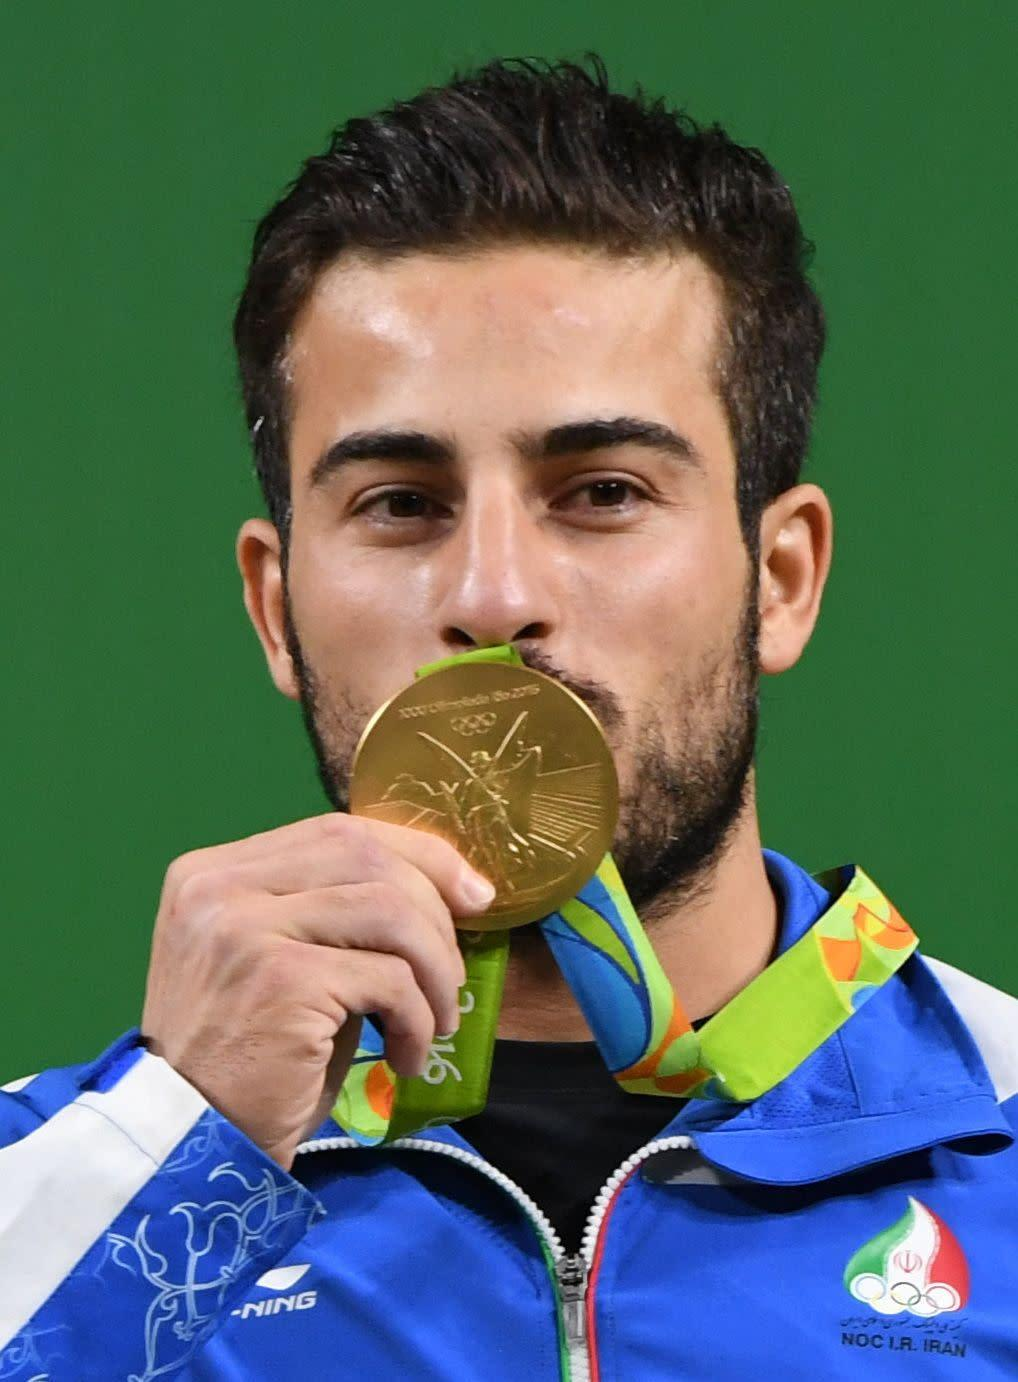 Iranian weightlifter Kianoush Rostamiwon gold at the Summer Olympics in Rio last year. (Photo: GOH CHAI HIN via Getty Images)